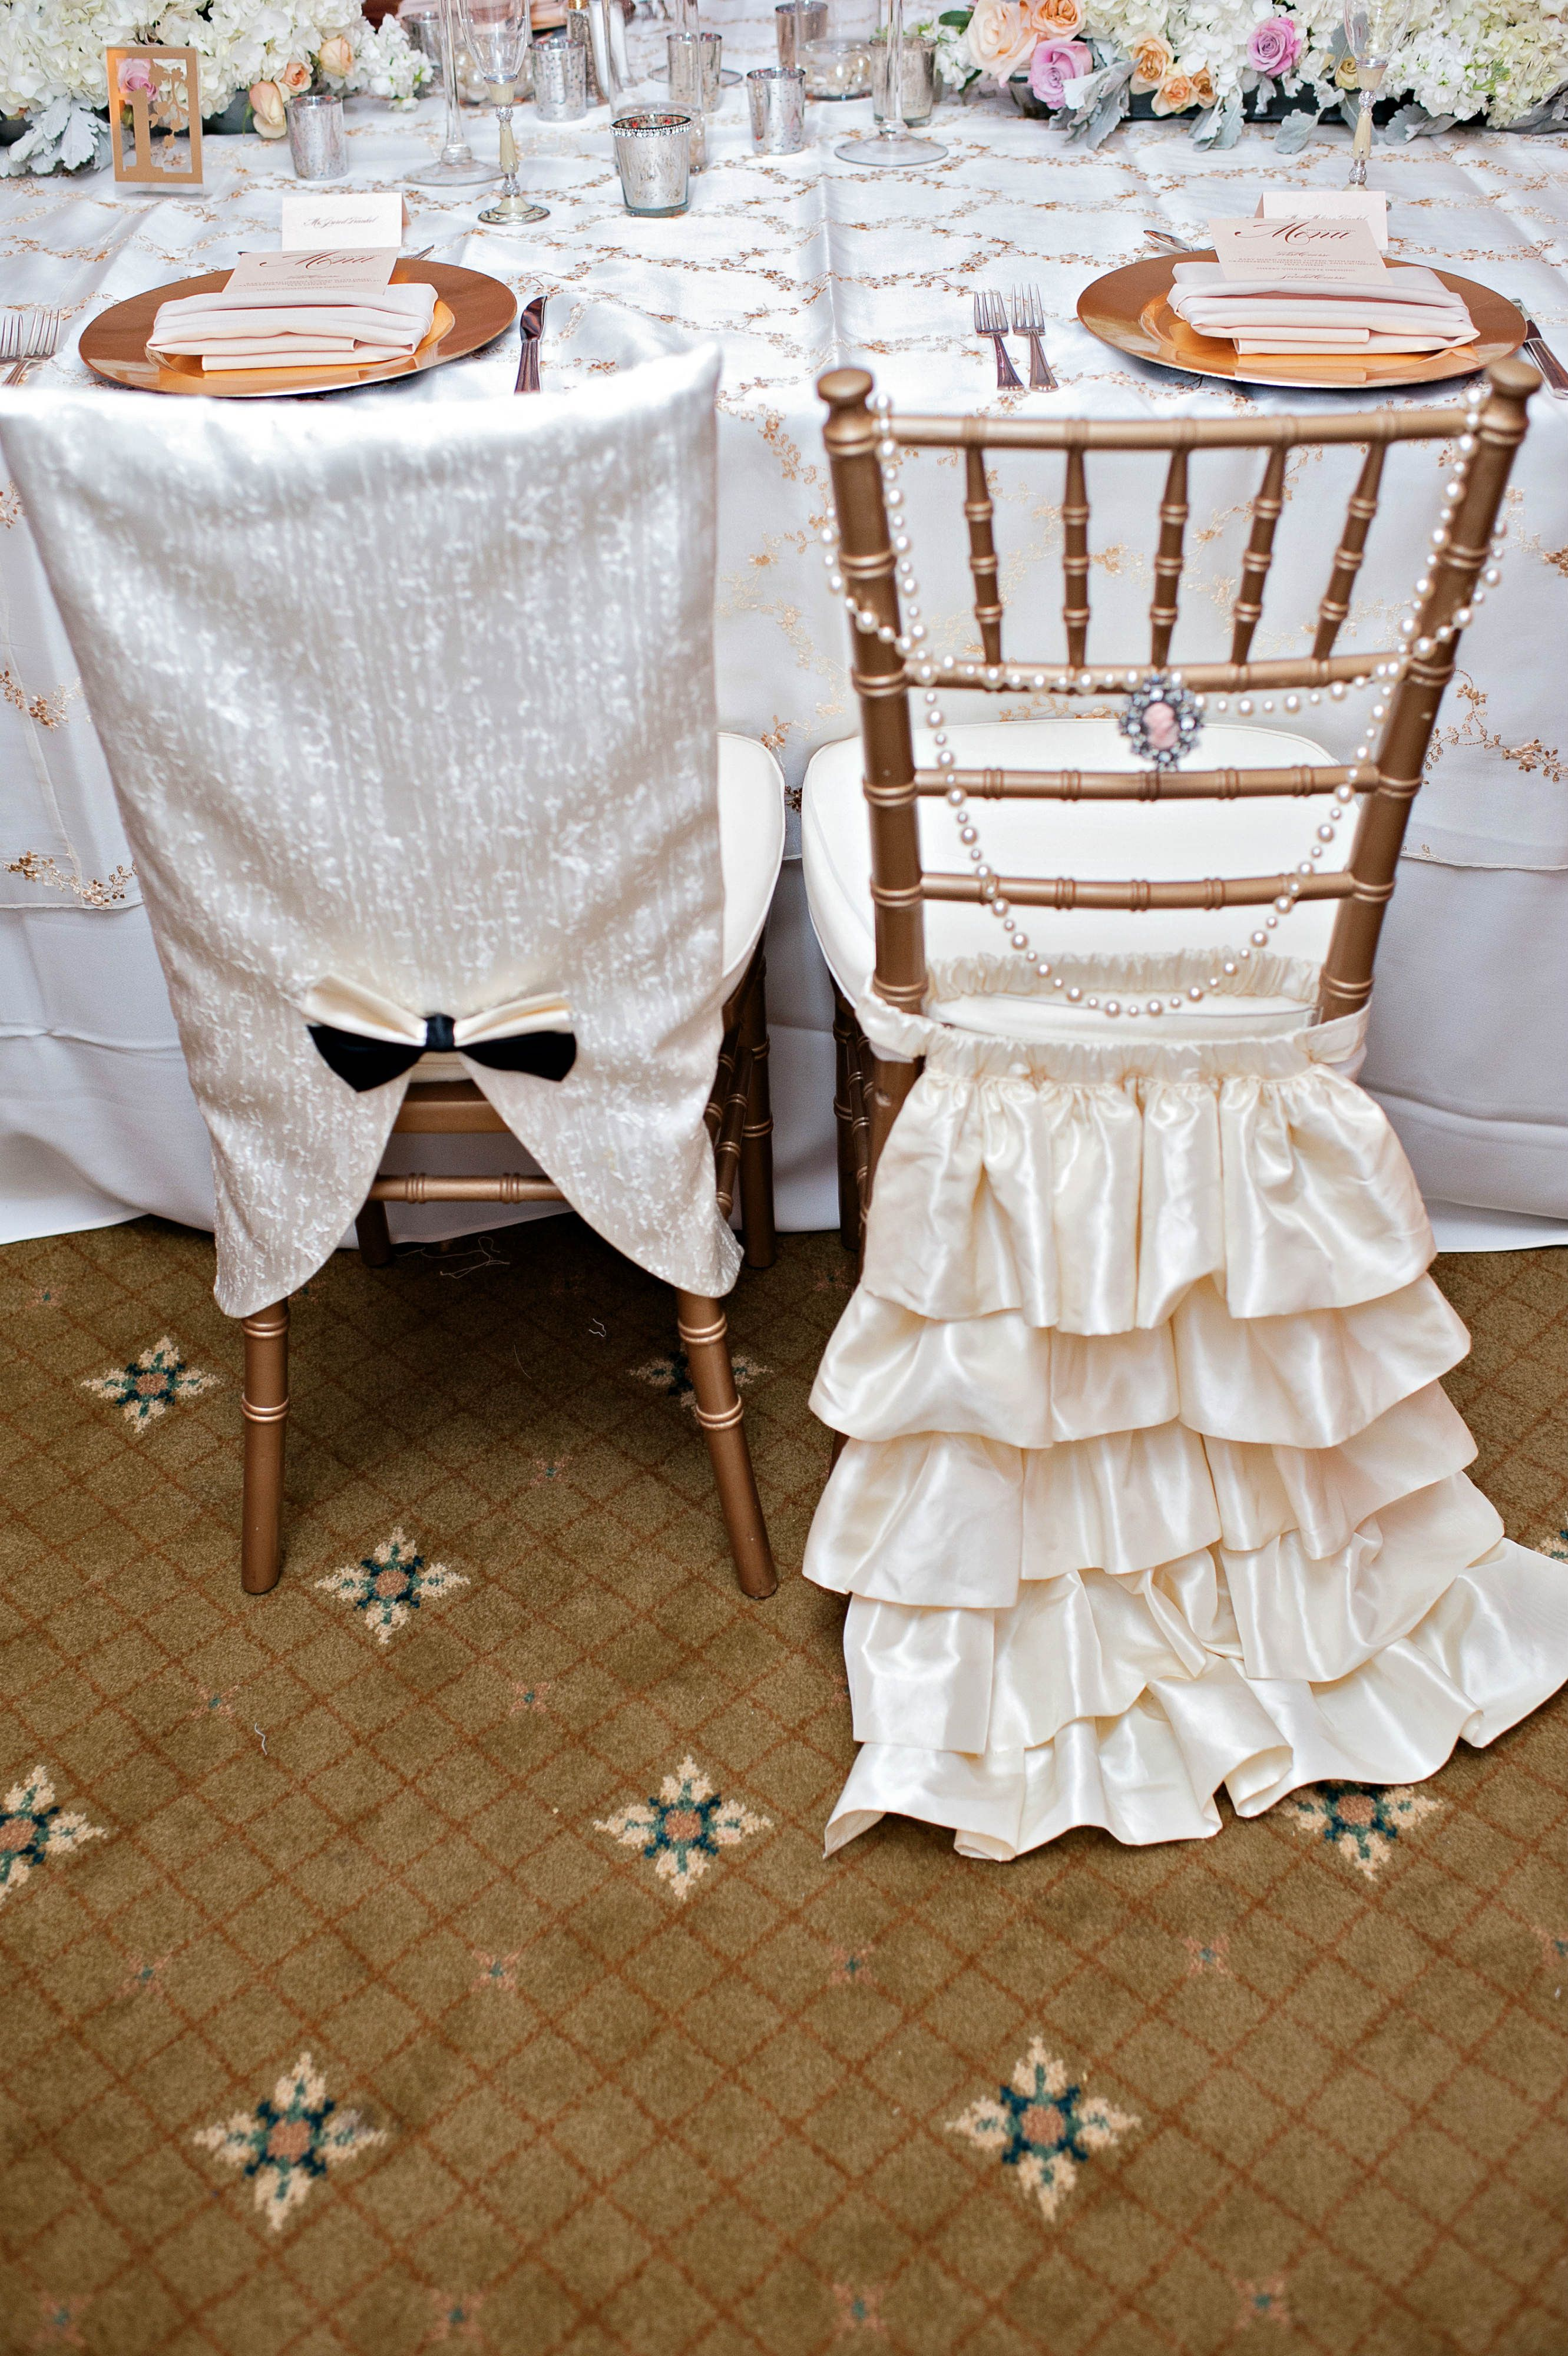 Wedding Bride And Groom Chairs Old Hickory Antique Chivari Chair Covers Super Cute Idea